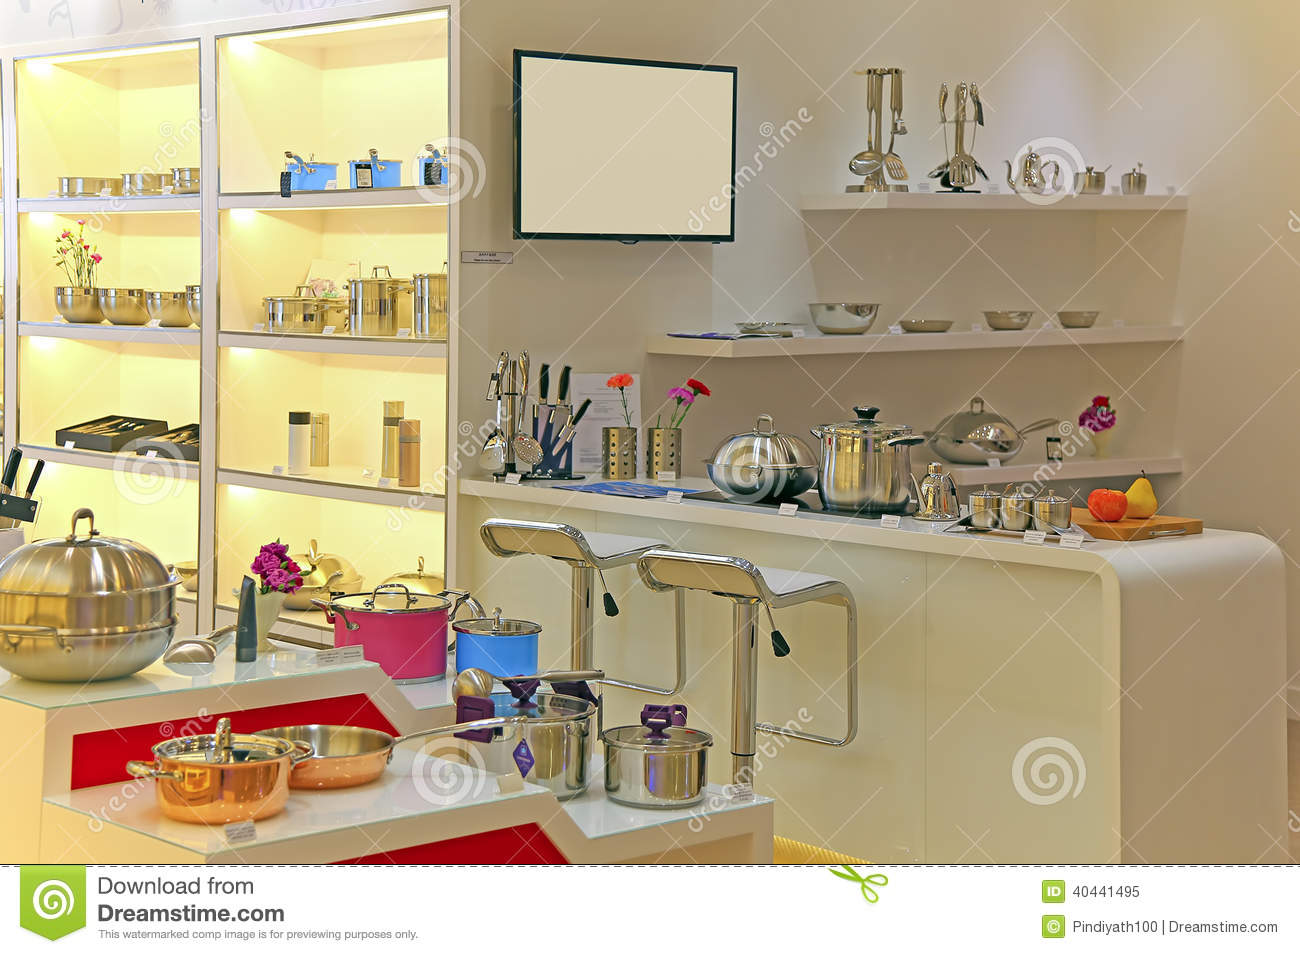 Uncategorized Kitchen Appliance Shop awesome kitchen appliances near me ideas bathroom bedroom home stock illustration image 59707020